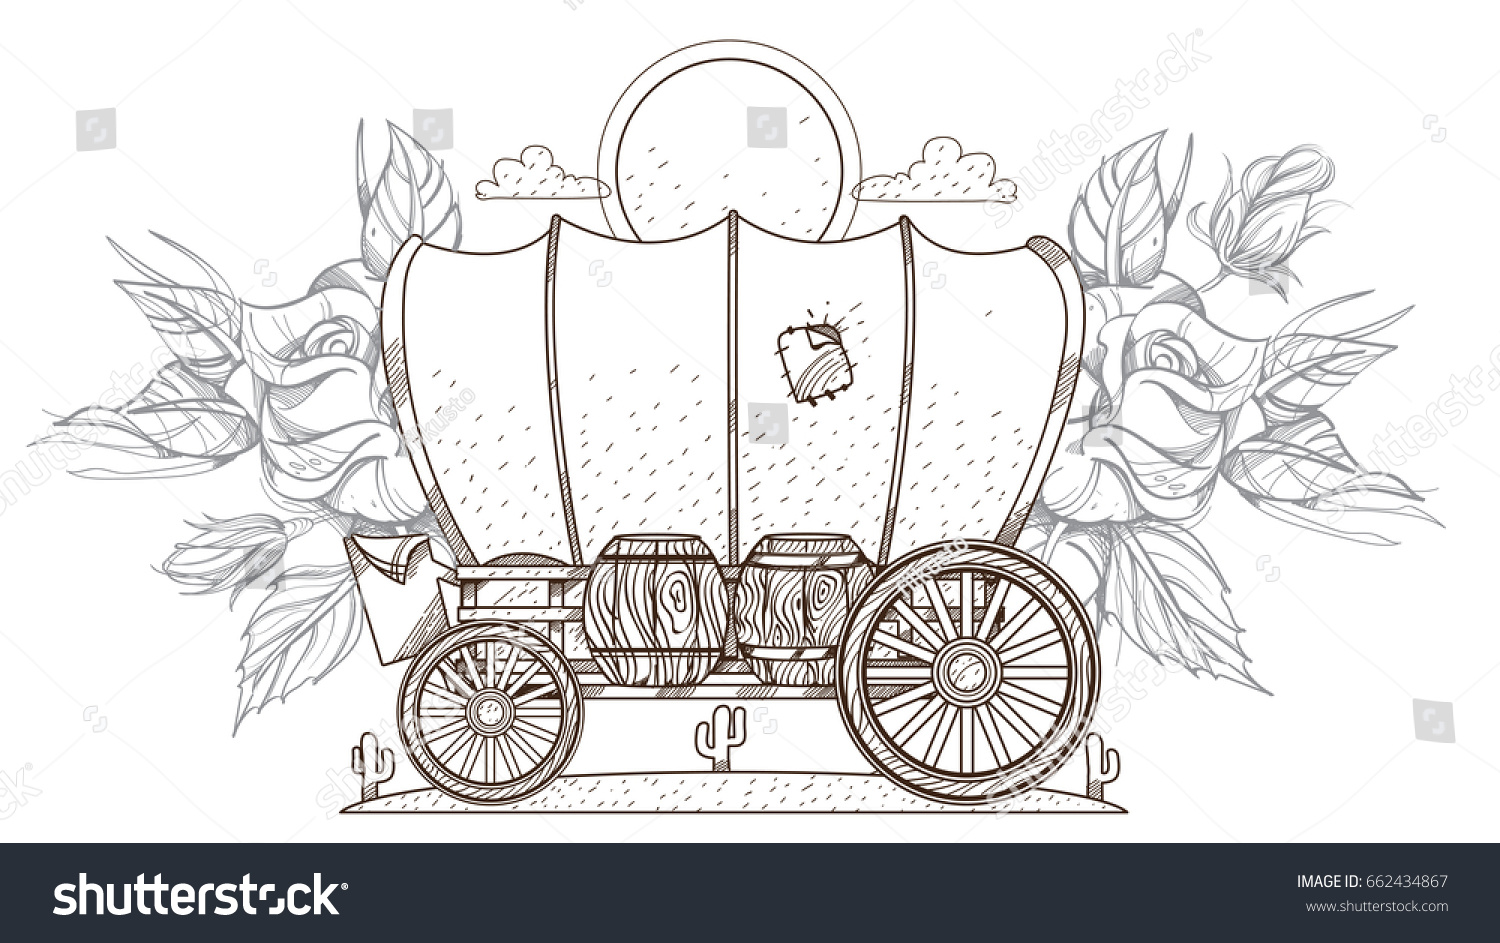 Covered wagon coloring page free - a-k-b.info